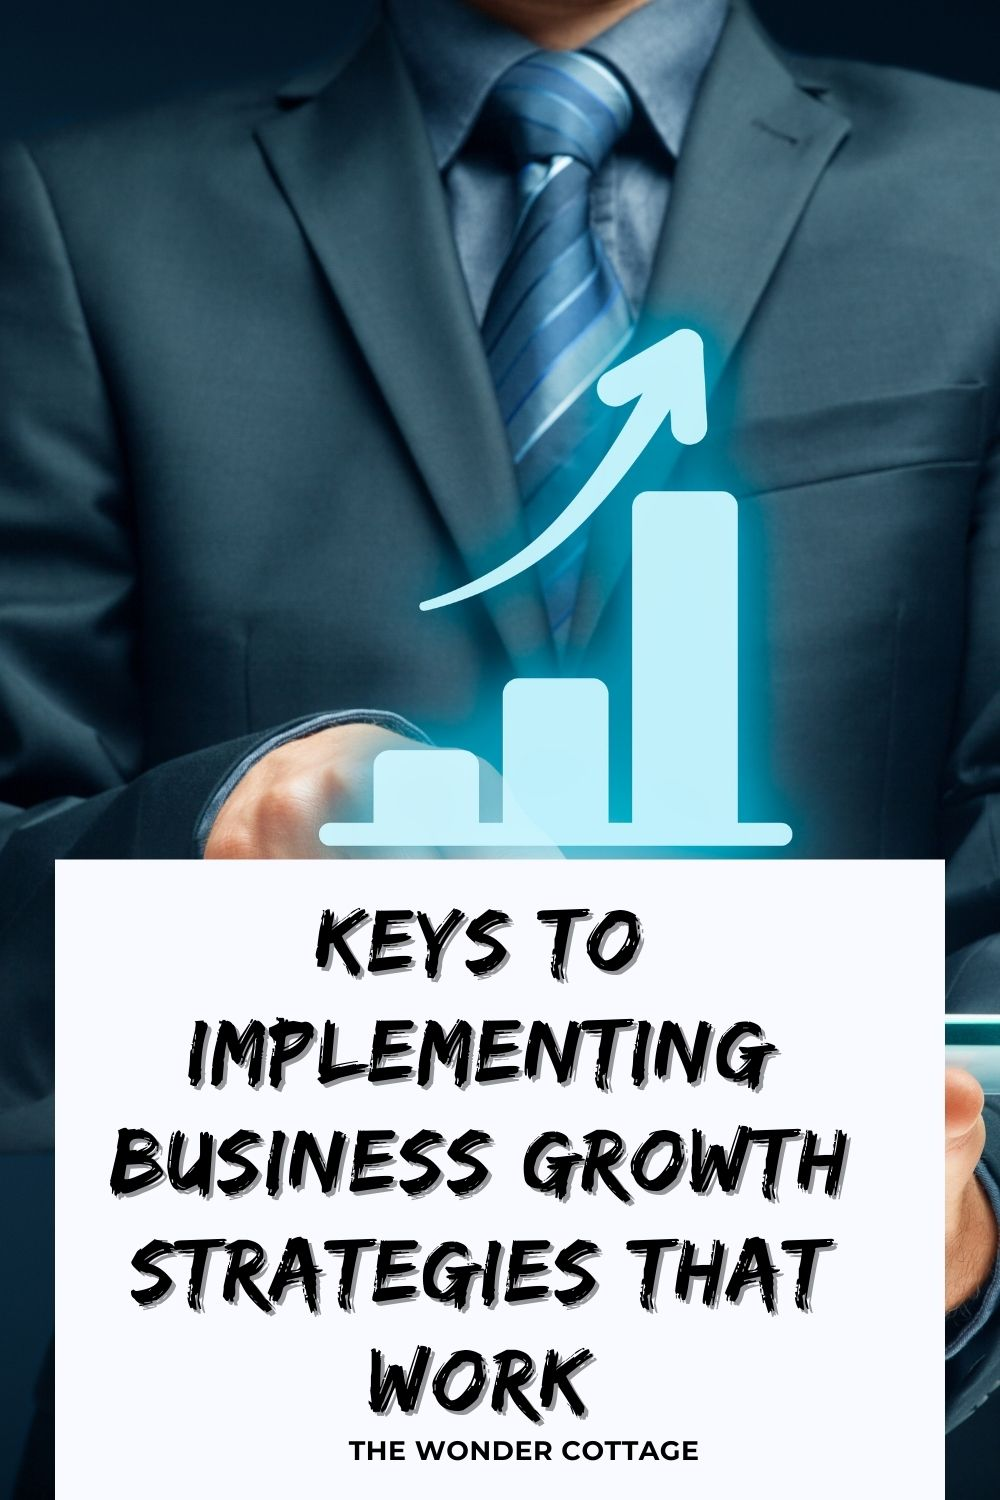 Keys To Implementing Business Growth Strategies That Work